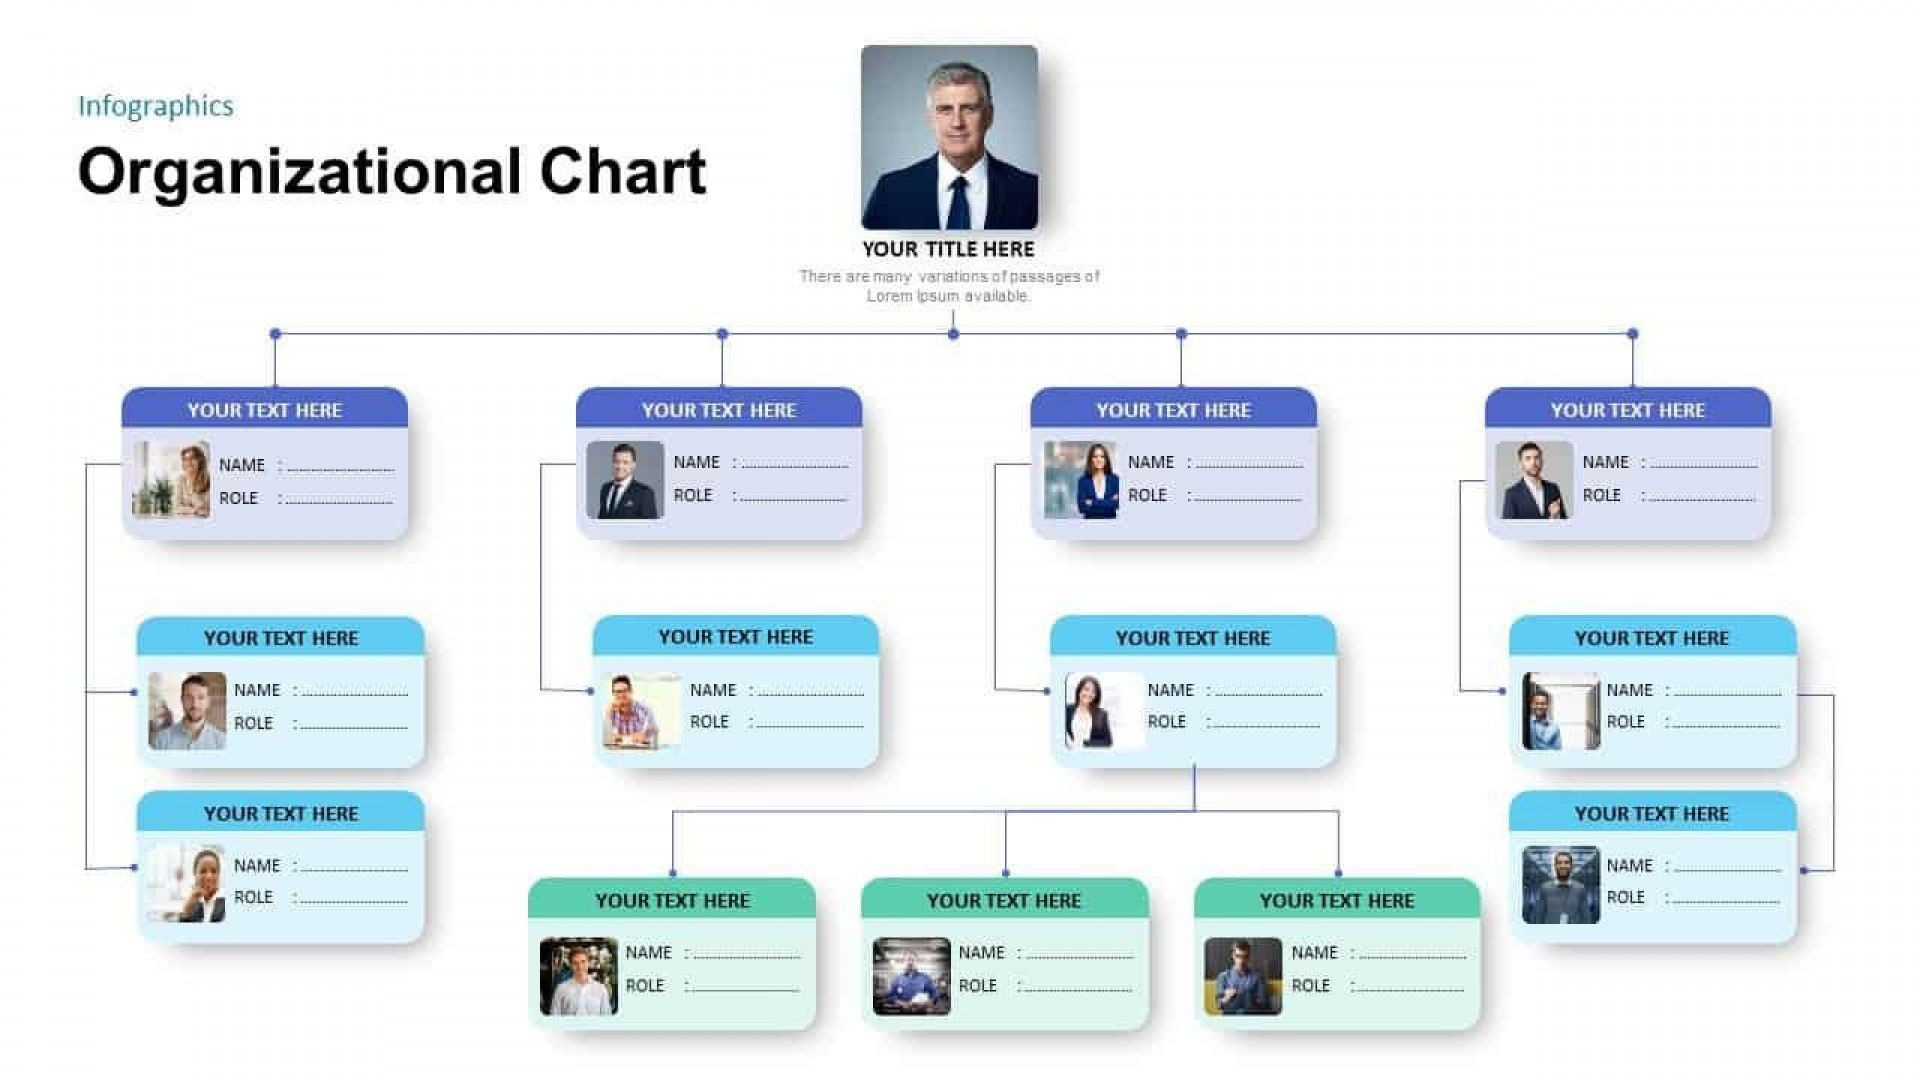 001 Stirring Microsoft Office Org Chart Template High Def  Templates M Organization Organizational1920